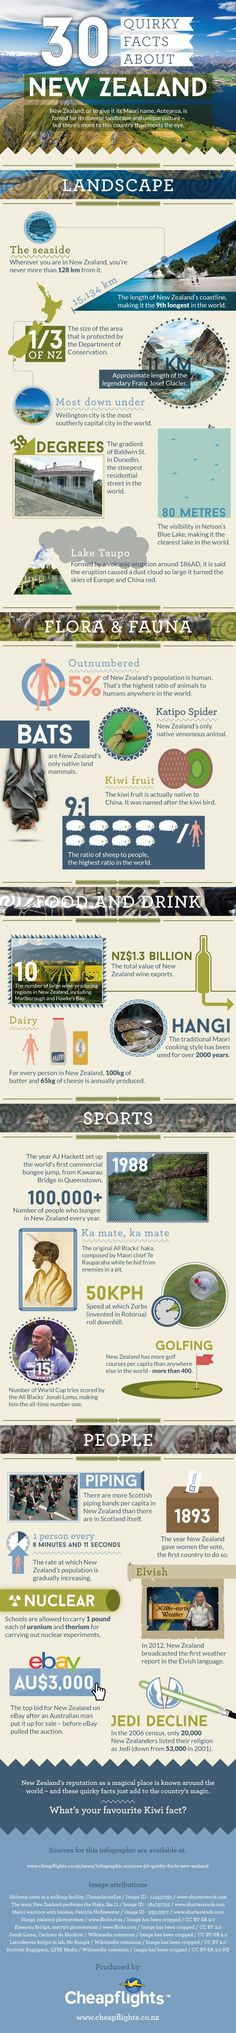 30 Quirky Facts About New Zealand www.travelerhype.com #travel #infographics